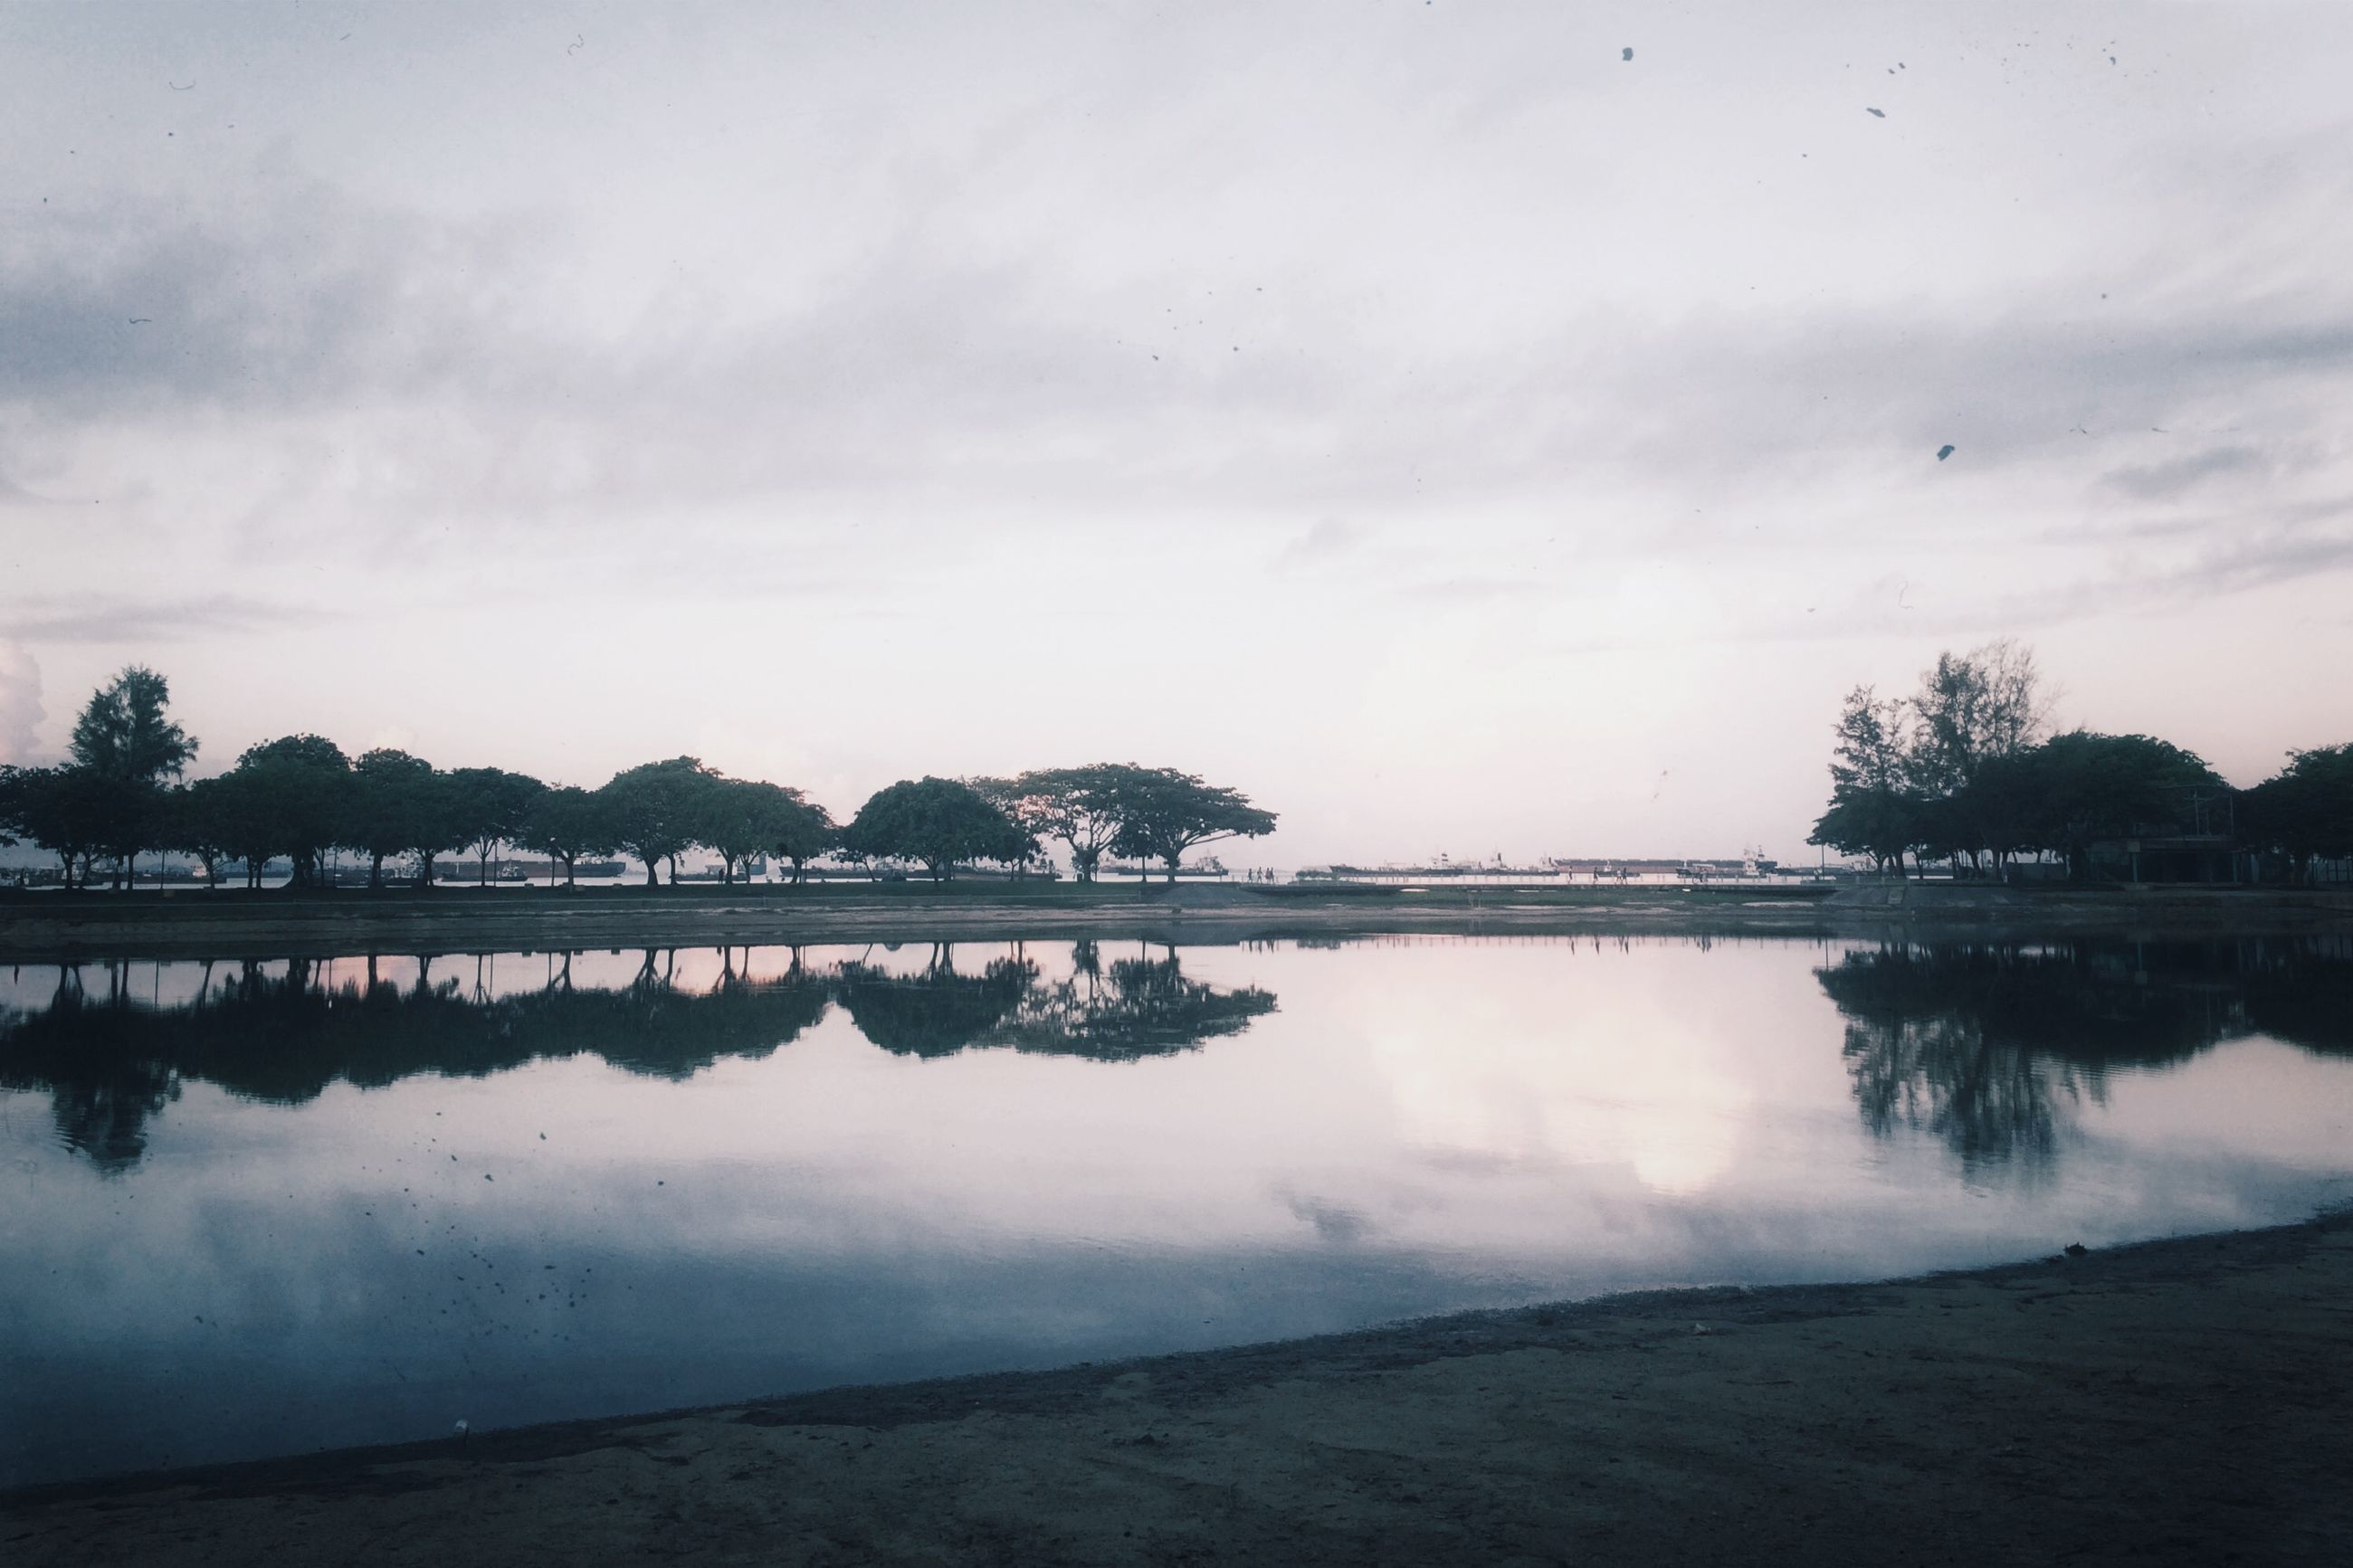 water, tranquil scene, sky, tranquility, scenics, reflection, lake, tree, beauty in nature, cloud - sky, nature, calm, cloud, idyllic, standing water, cloudy, waterfront, beach, non-urban scene, outdoors